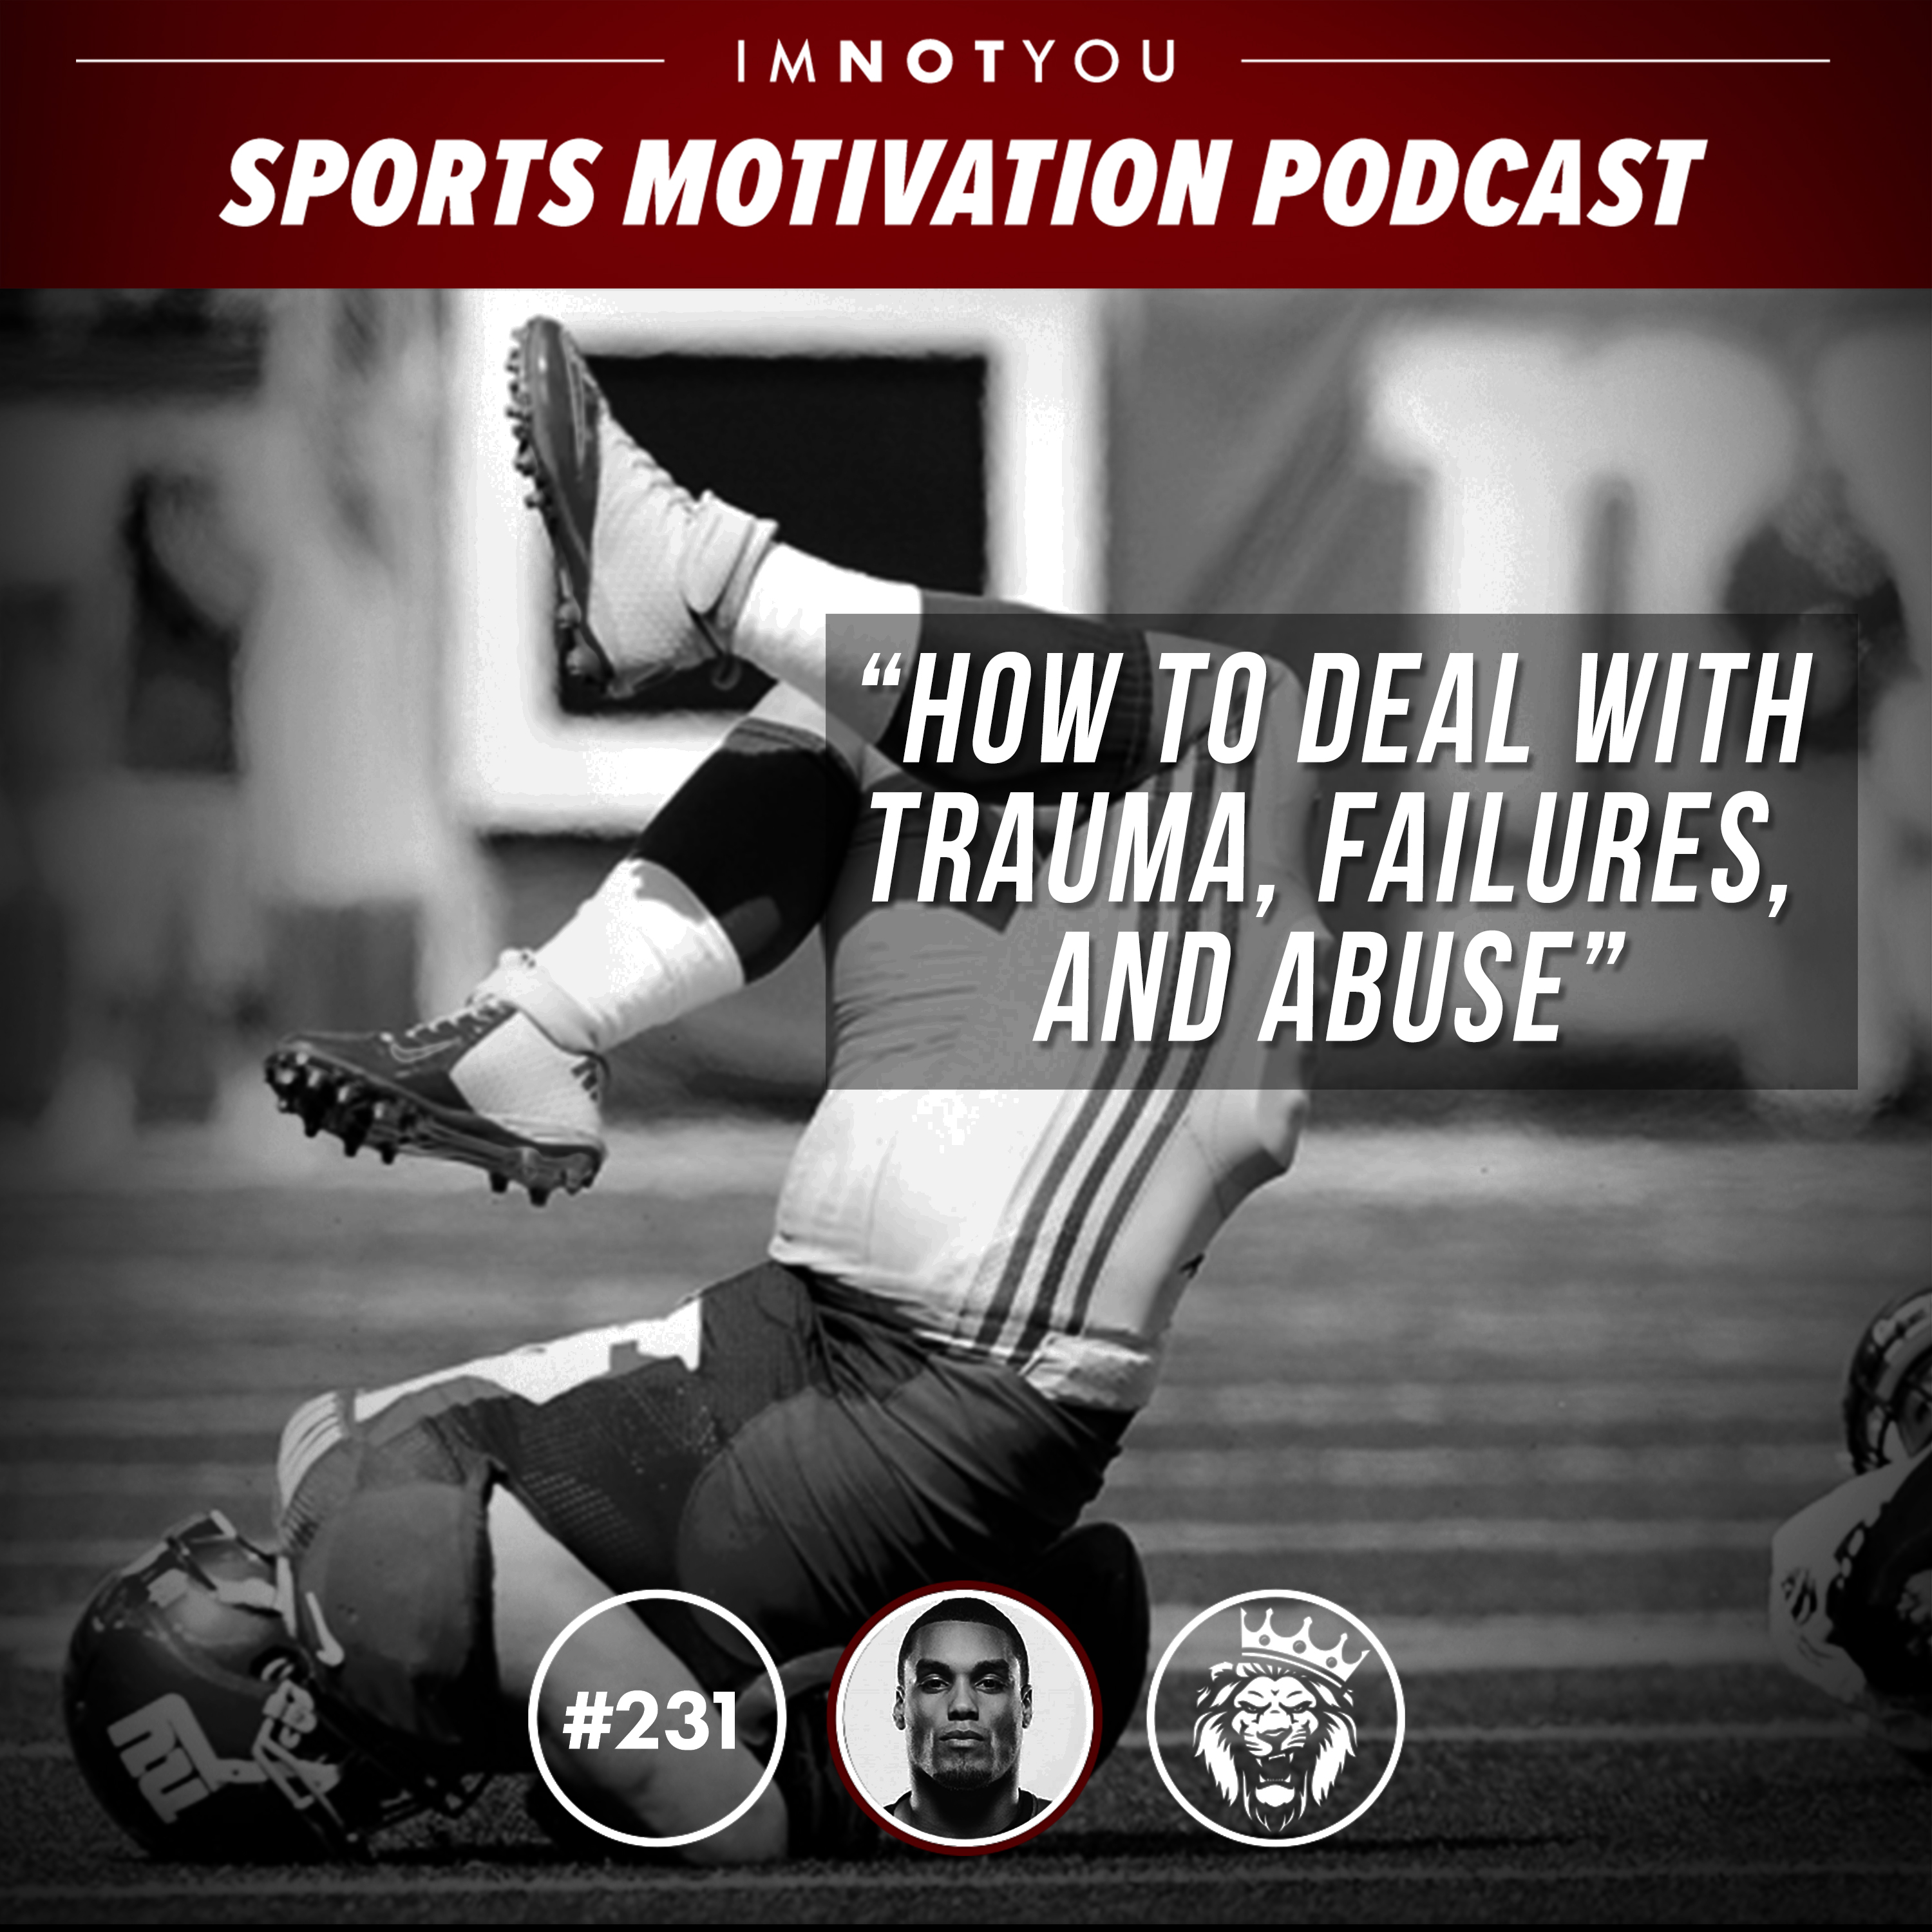 231: How to deal with Trauma, Failures, and Abuse